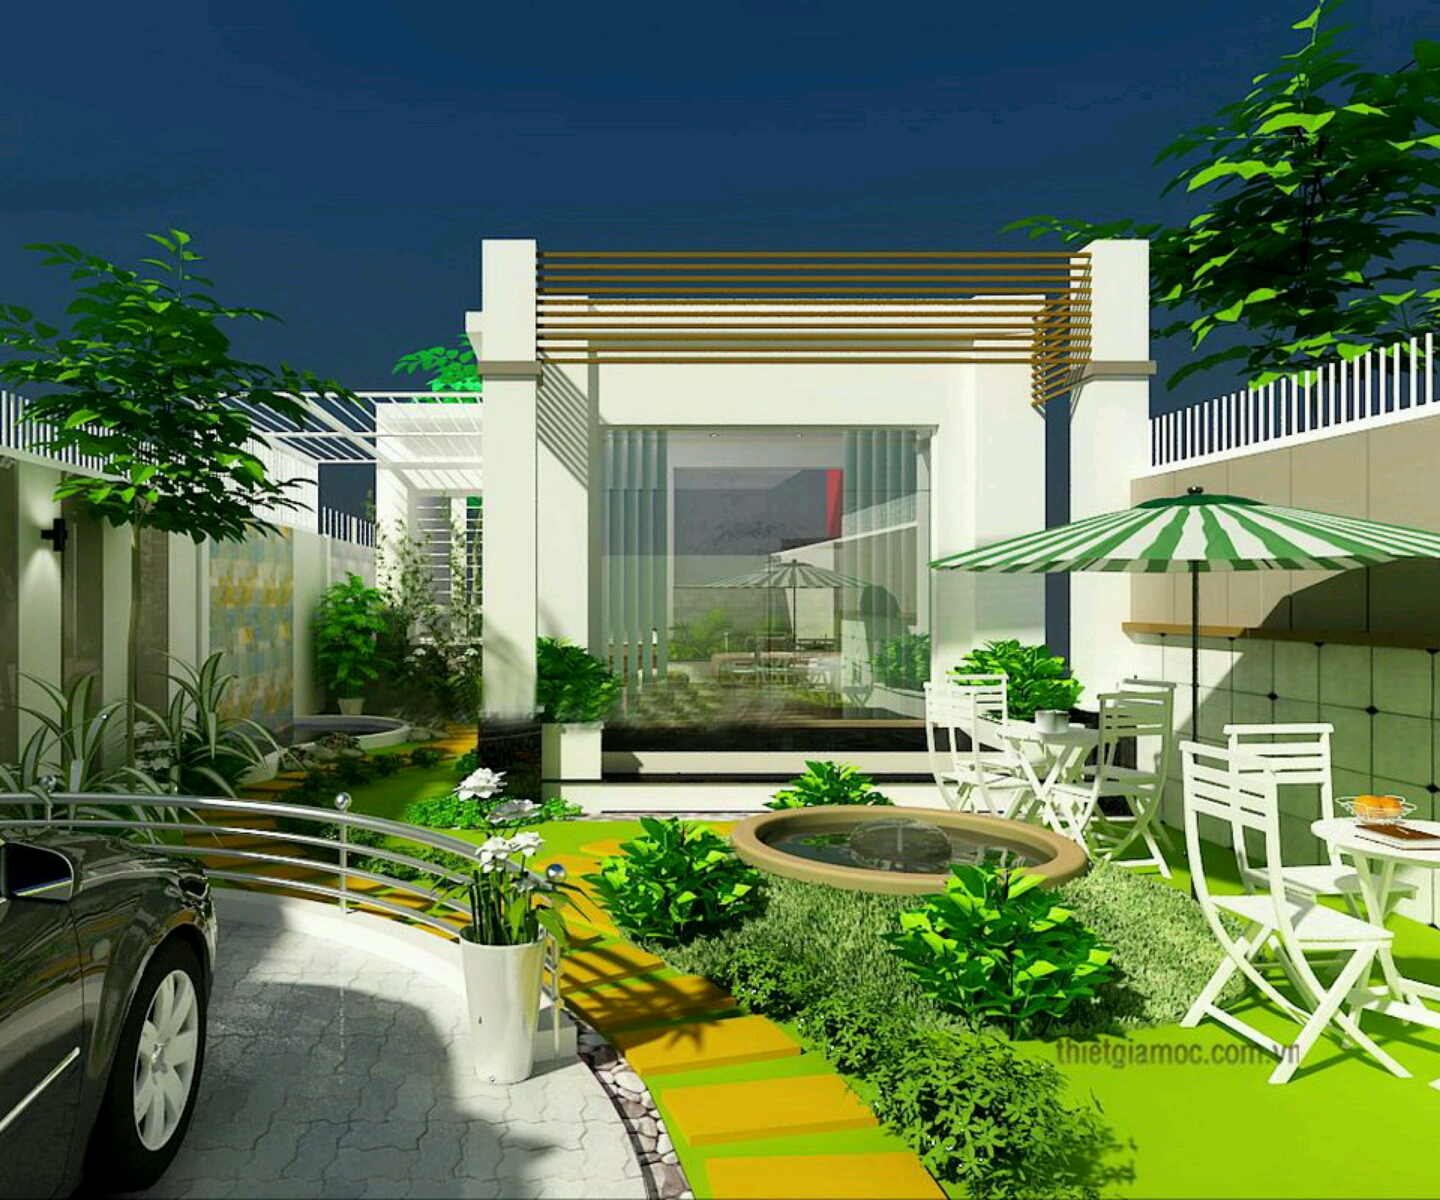 New home designs latest modern homes beautiful garden for House garden ideas